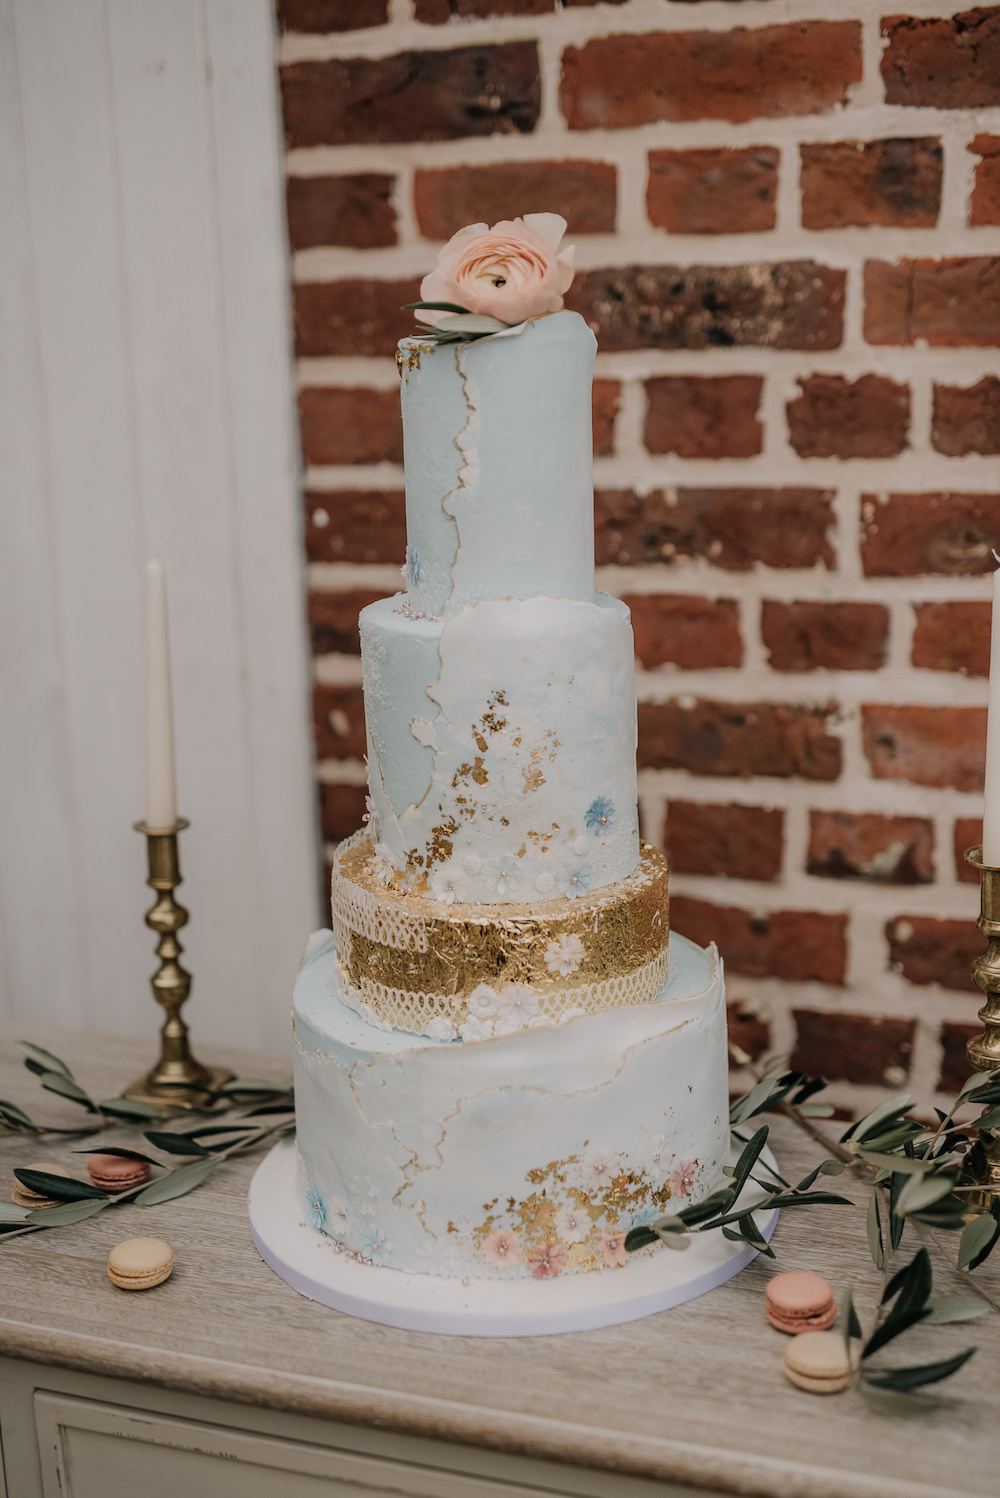 Cake Tall Iced Gold Leaf France Elopement Ideas Pierra G Photography